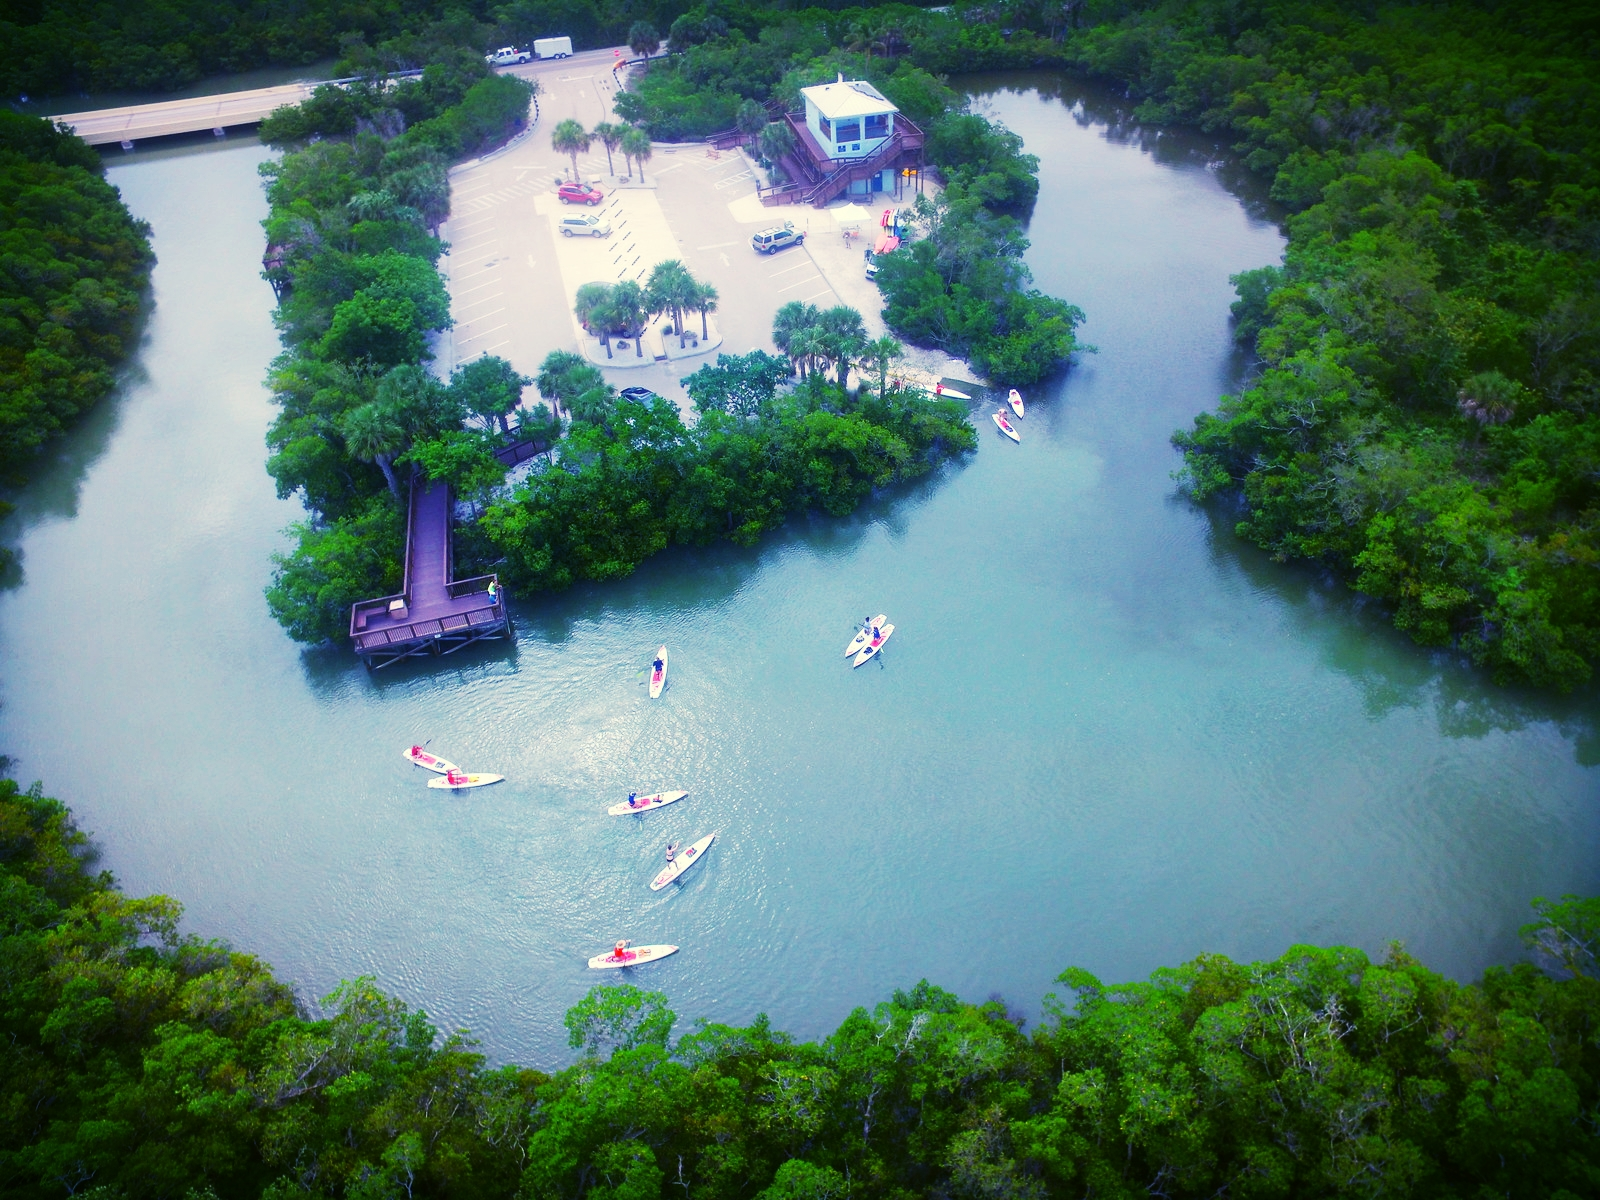 Bunche Beach Preserve provides many acres of beautiful, protected paddling territory.